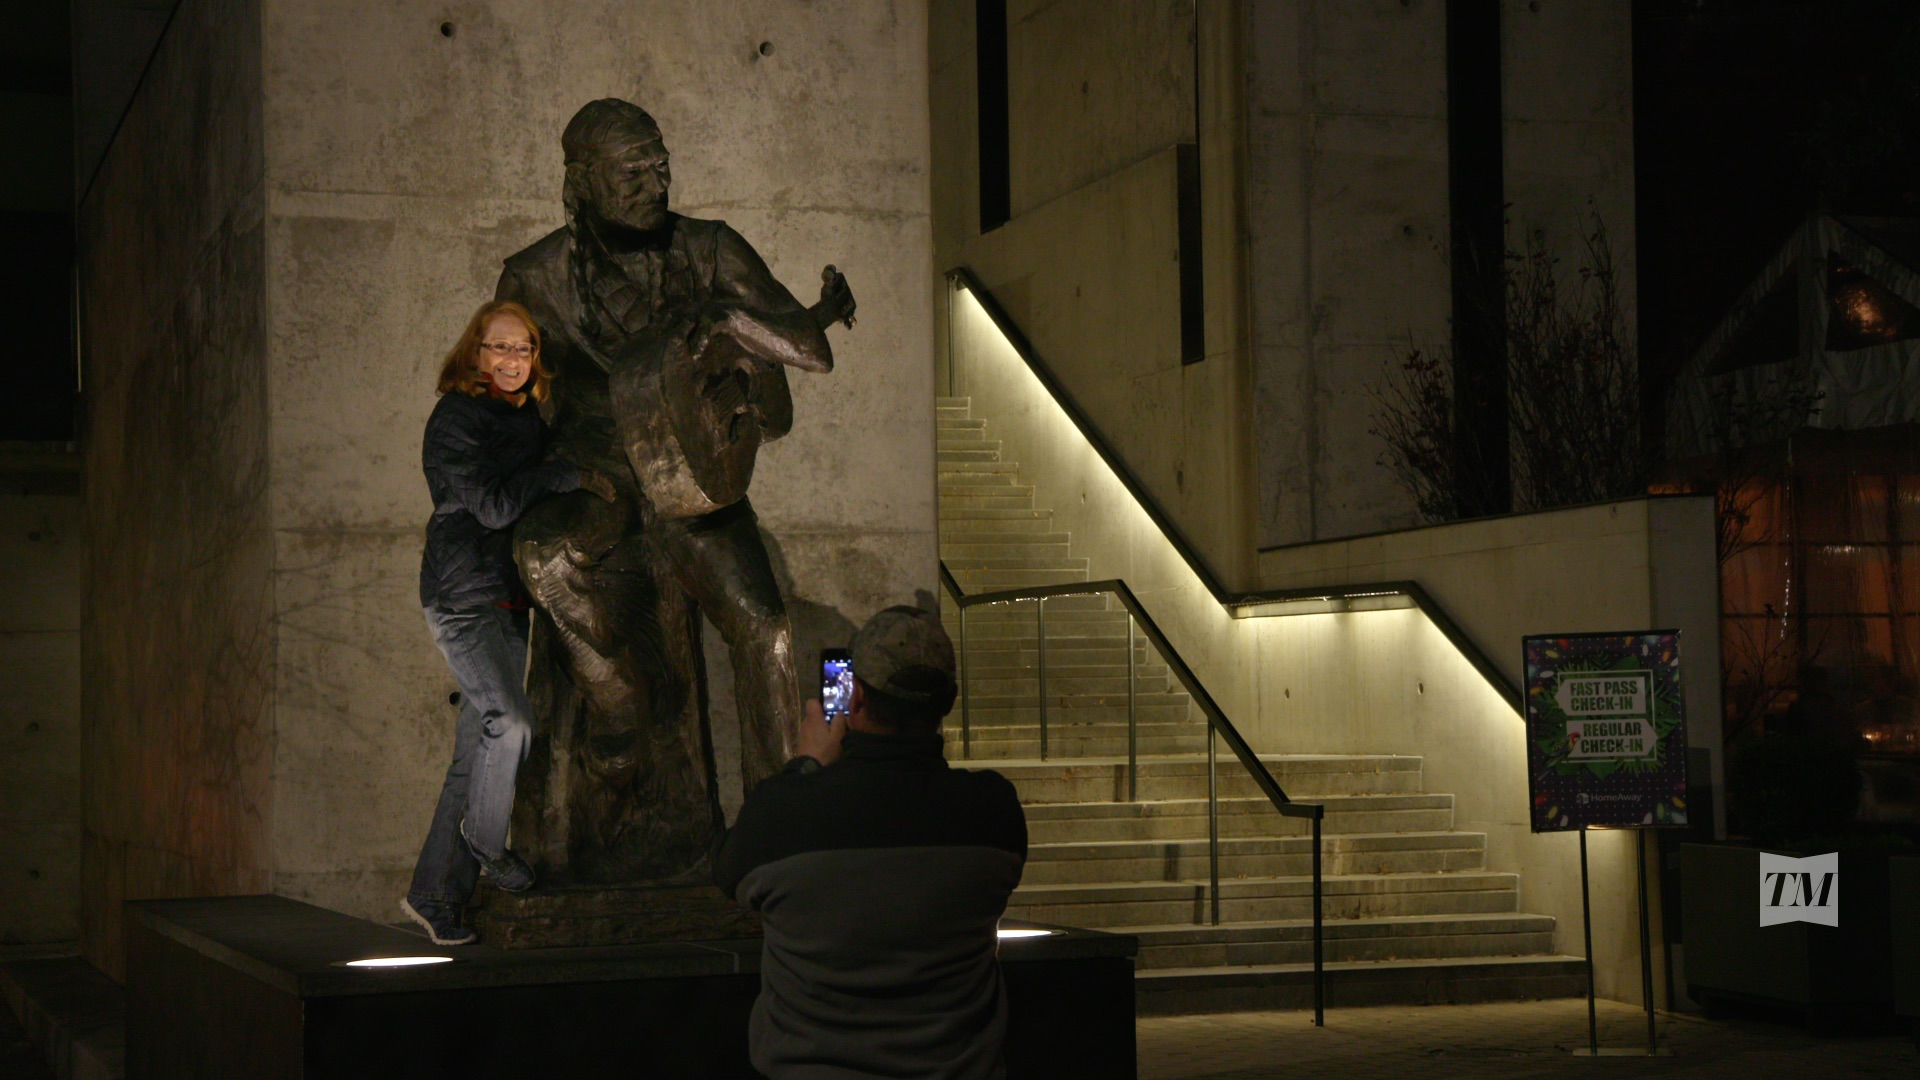 dox-video-production-work-wille-nelson-statue.jpeg